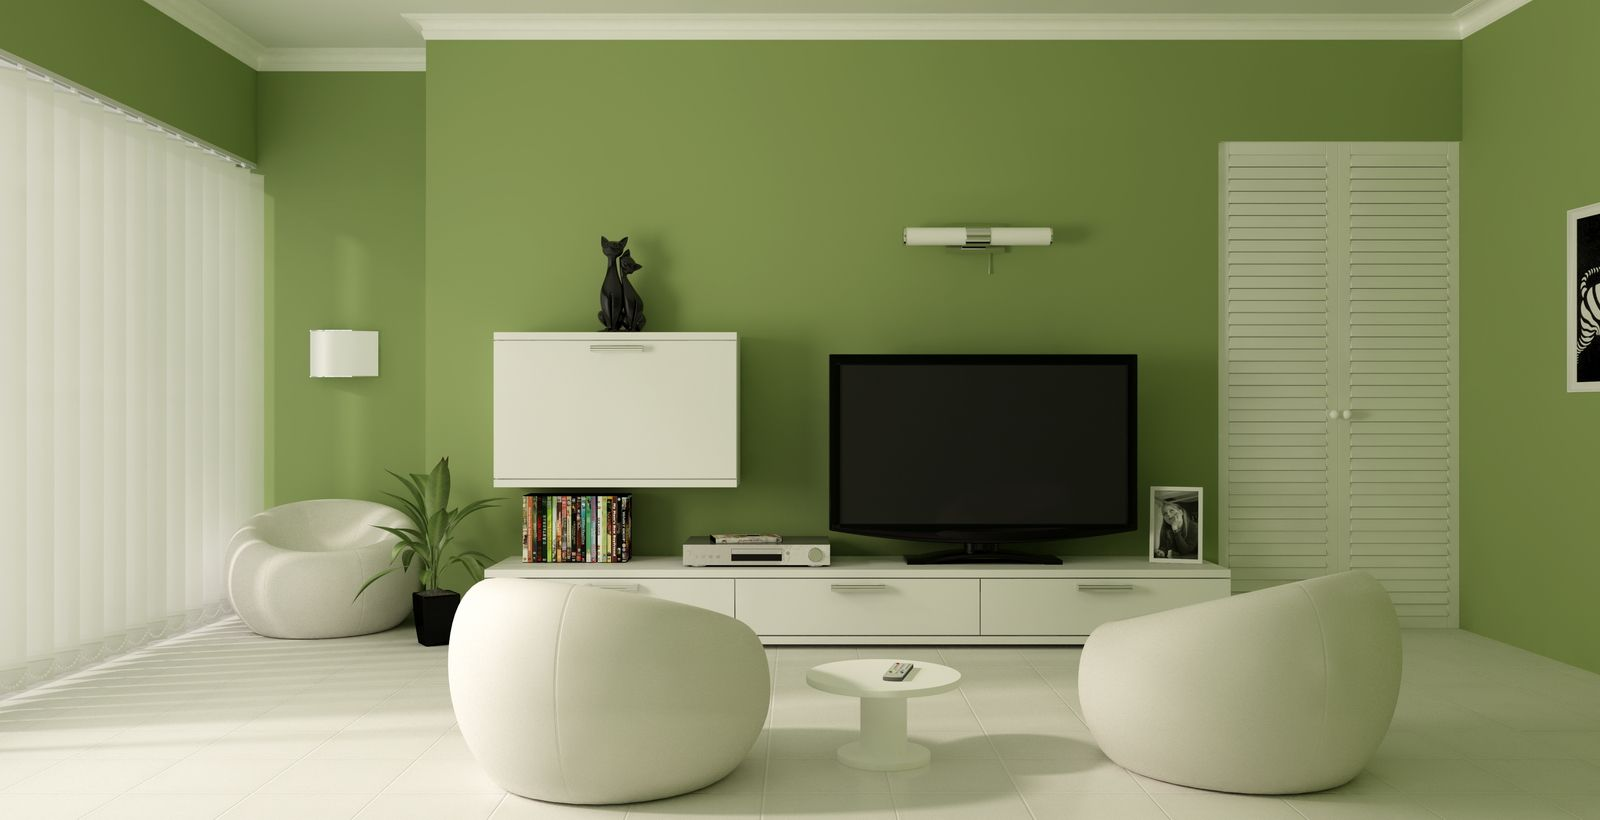 Living Room Color Green paint colors ideas for living room | green paint colors, living